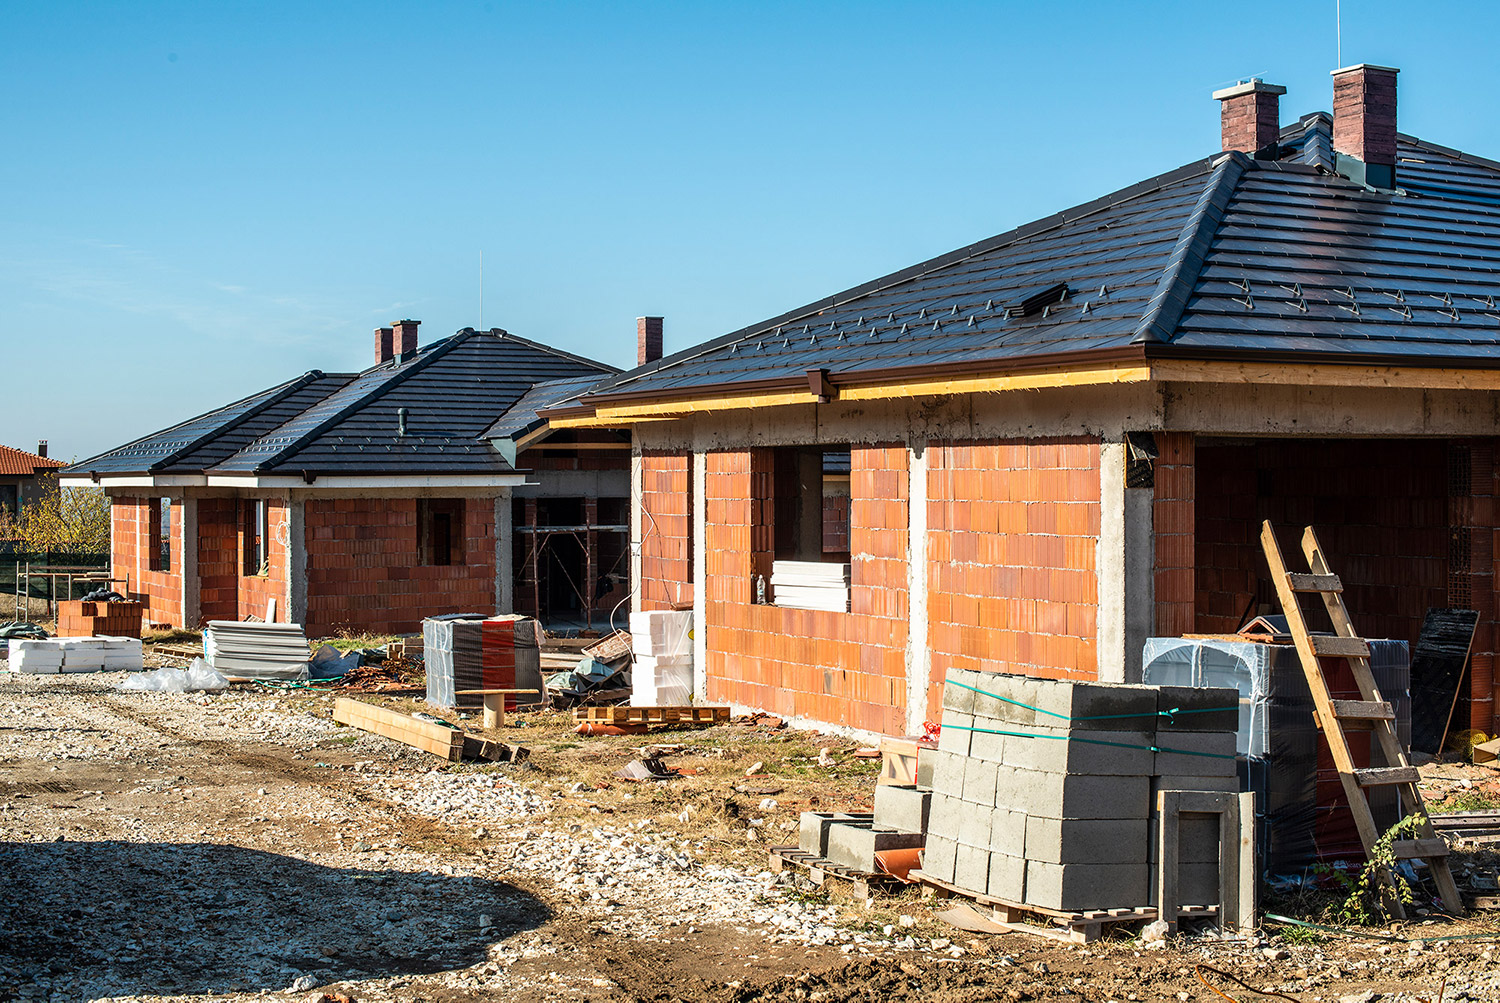 building-a-new-brick-house-with-black-roof-small-MAS2ABC2